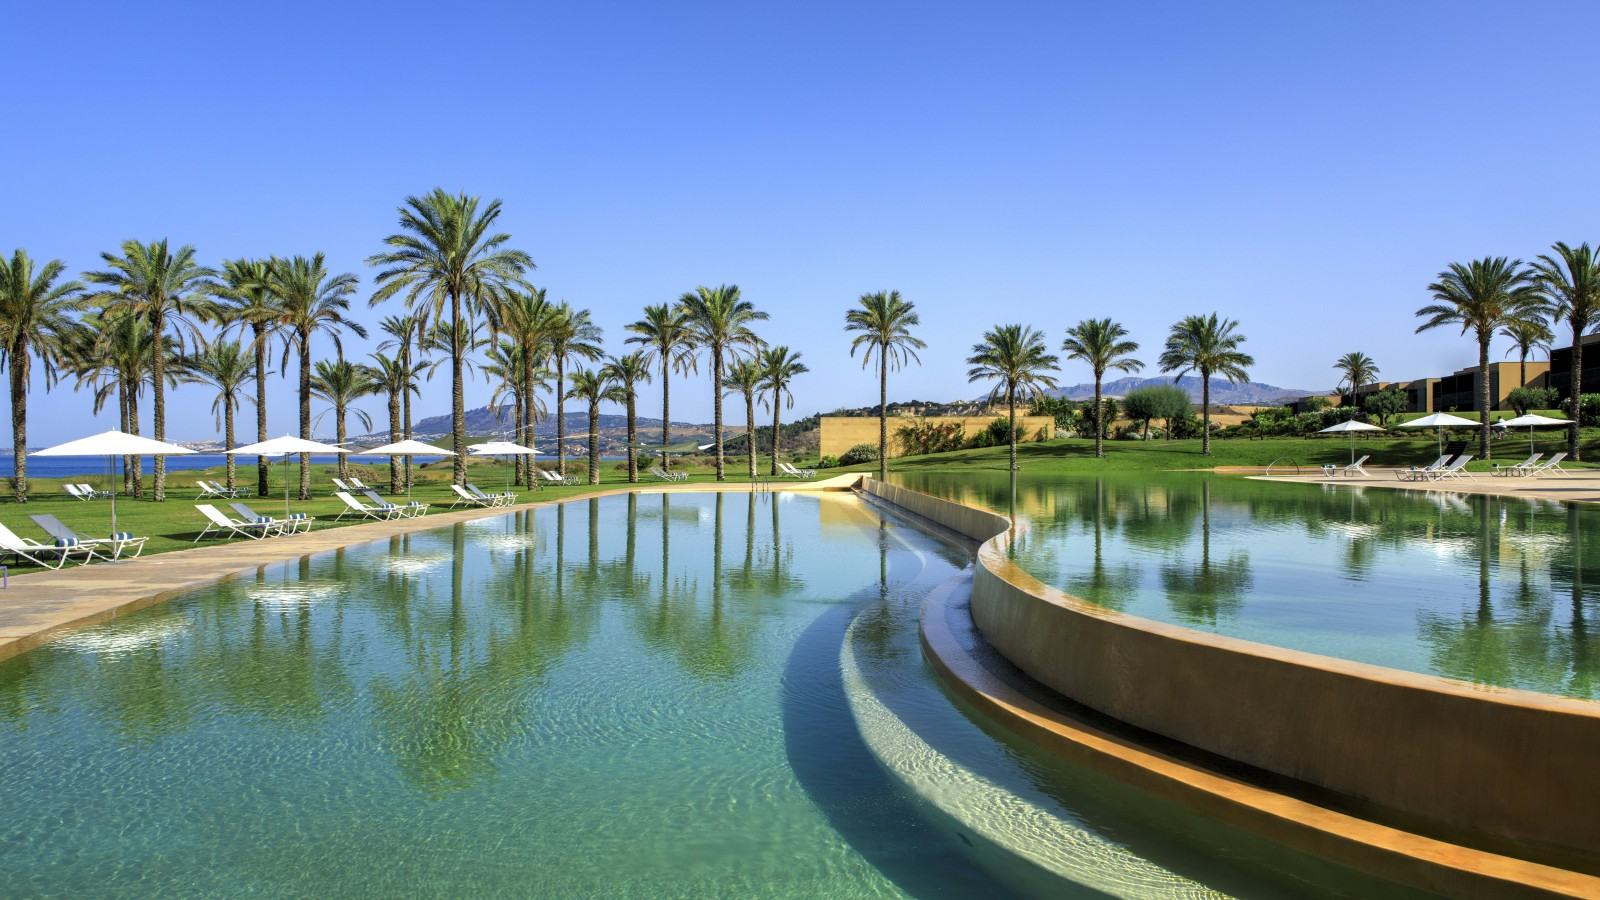 The Pool at the Verdura Resort